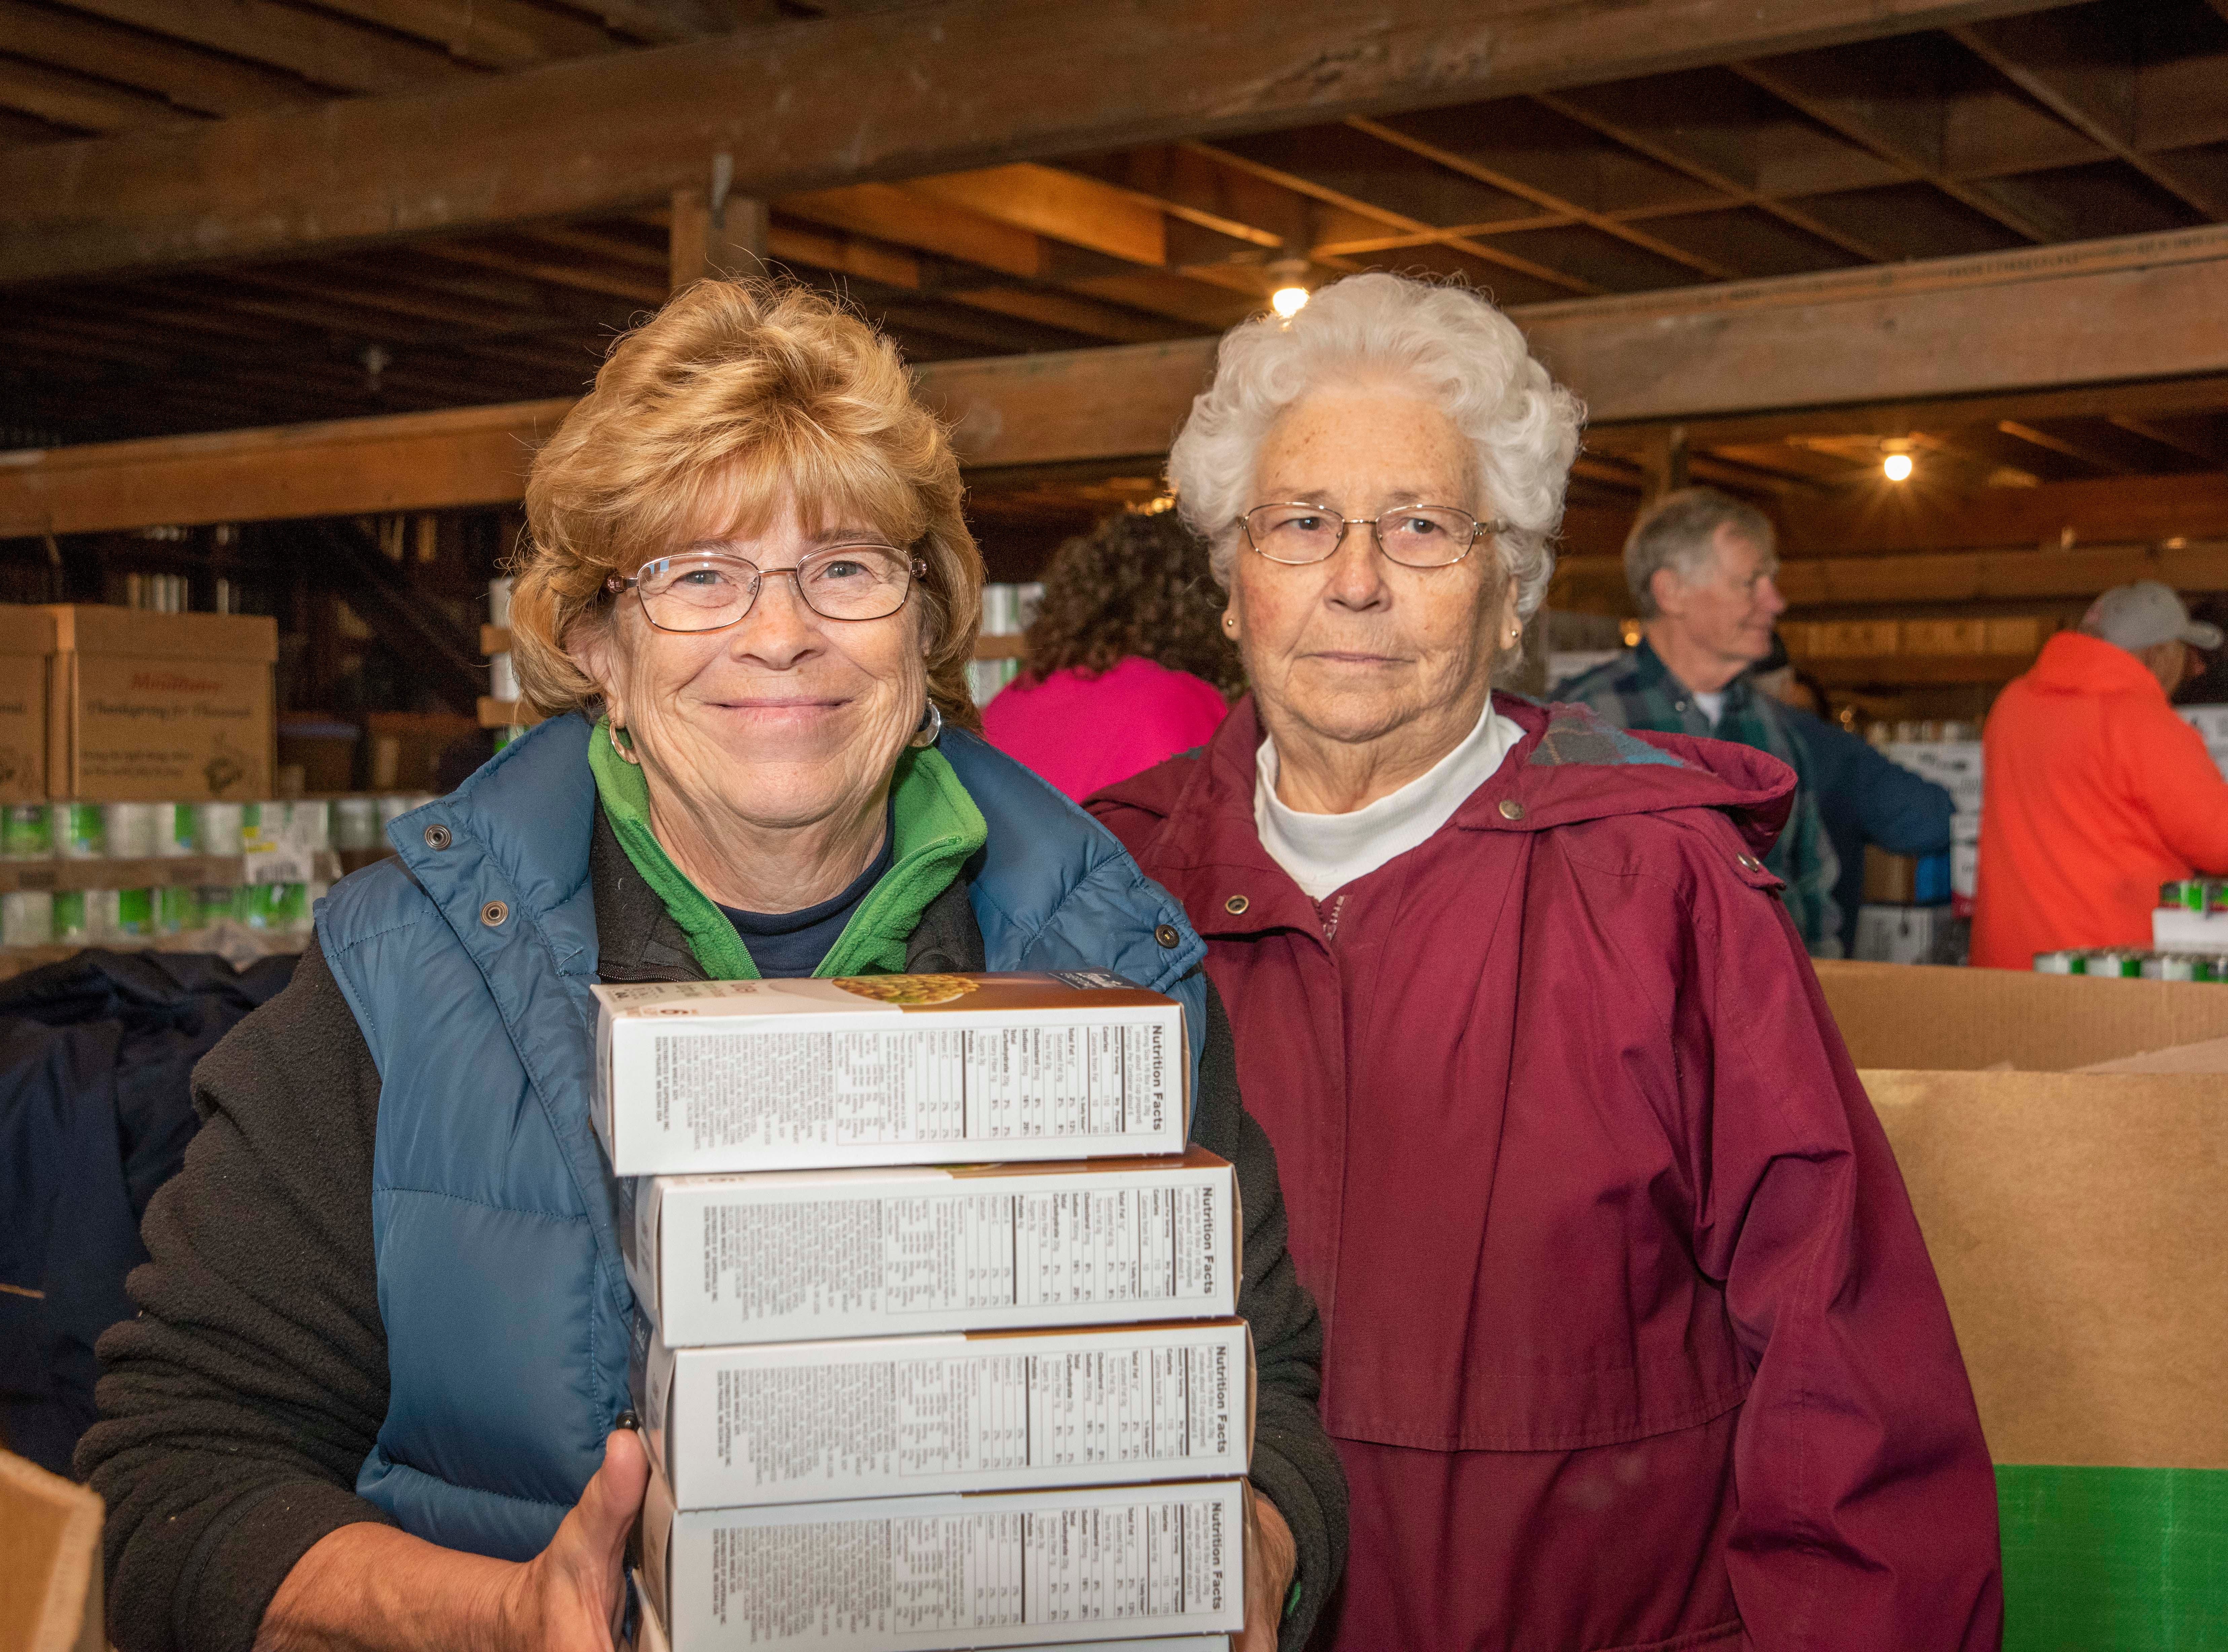 (L) Joanne Schmitt and Barbara Sapp, members of the Delaware Farm Bureau help pack boxes of food for Thanksgiving for Thousands.